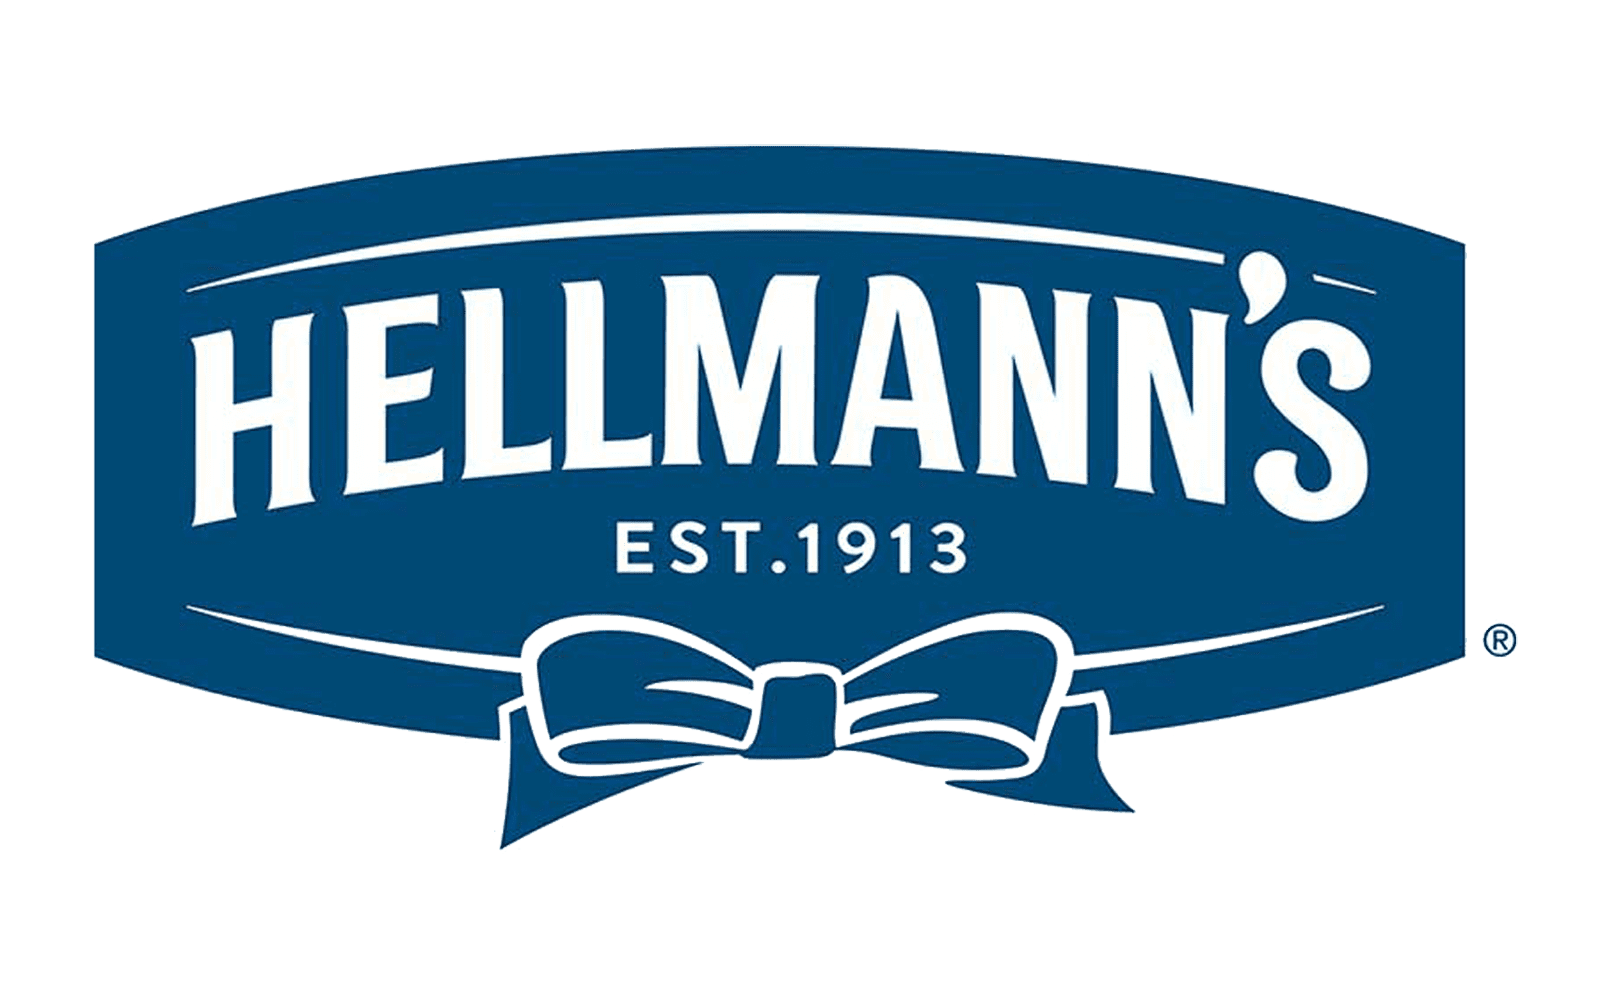 Hellmann's Mayonnaise, 20,/1,622 Cases, Ext. Retail $220,650, Newville, PA